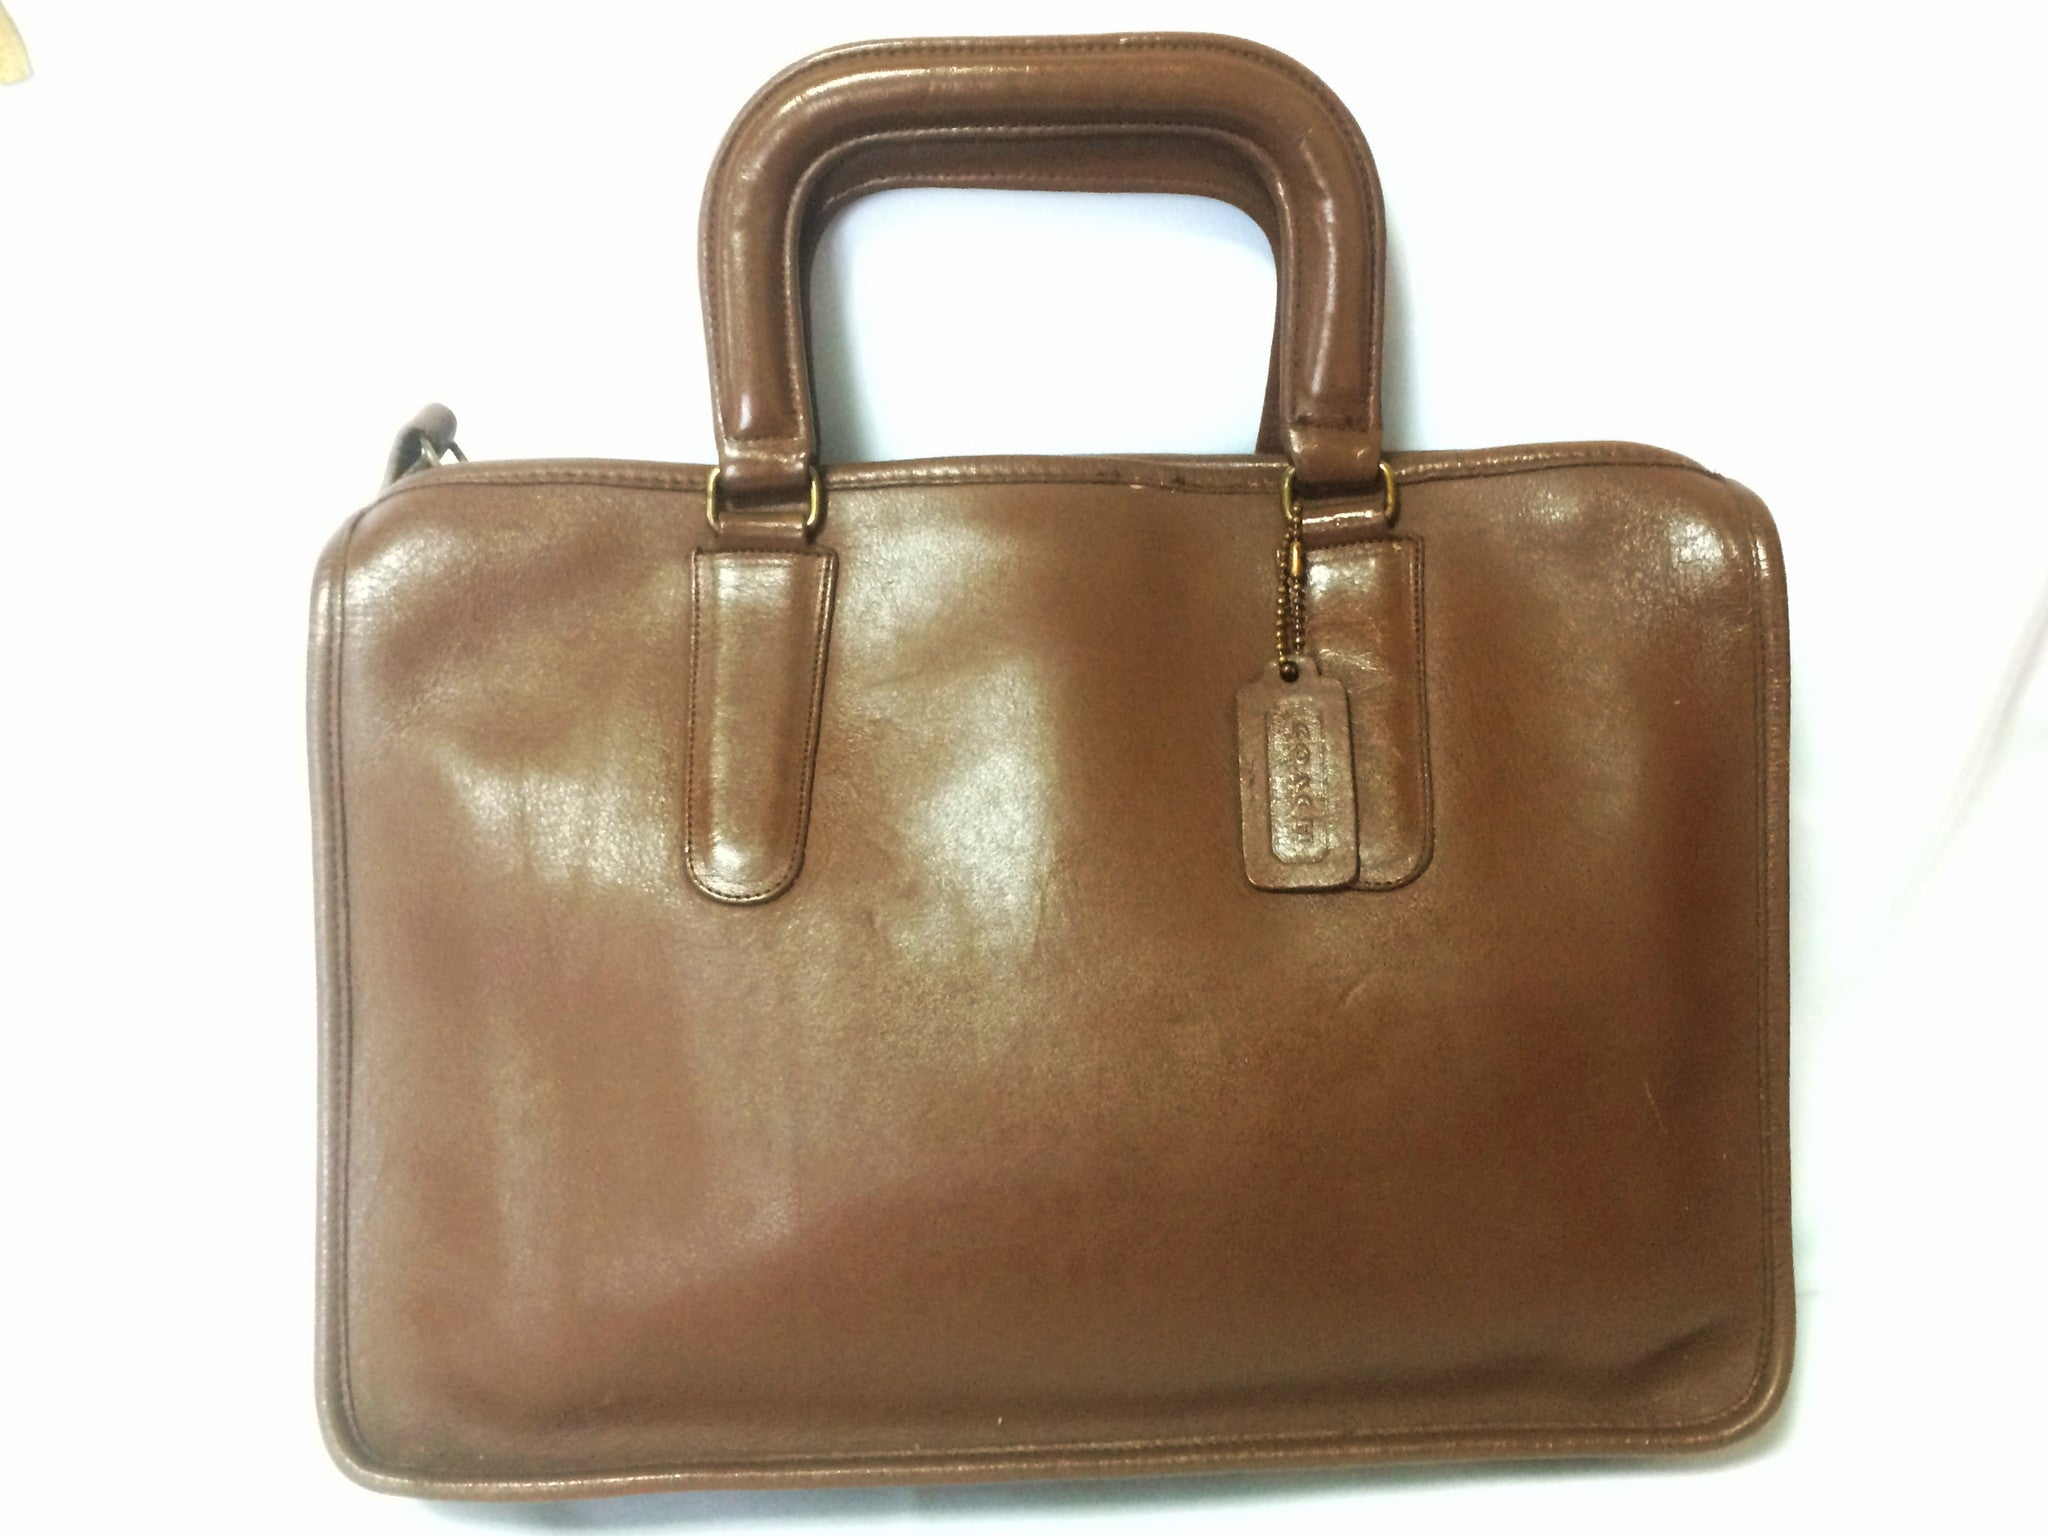 80's Vintage COACH brown leather bag, handbag designed by Bonnie Cashin, Made in New York City Classic unisex purse. Must have.